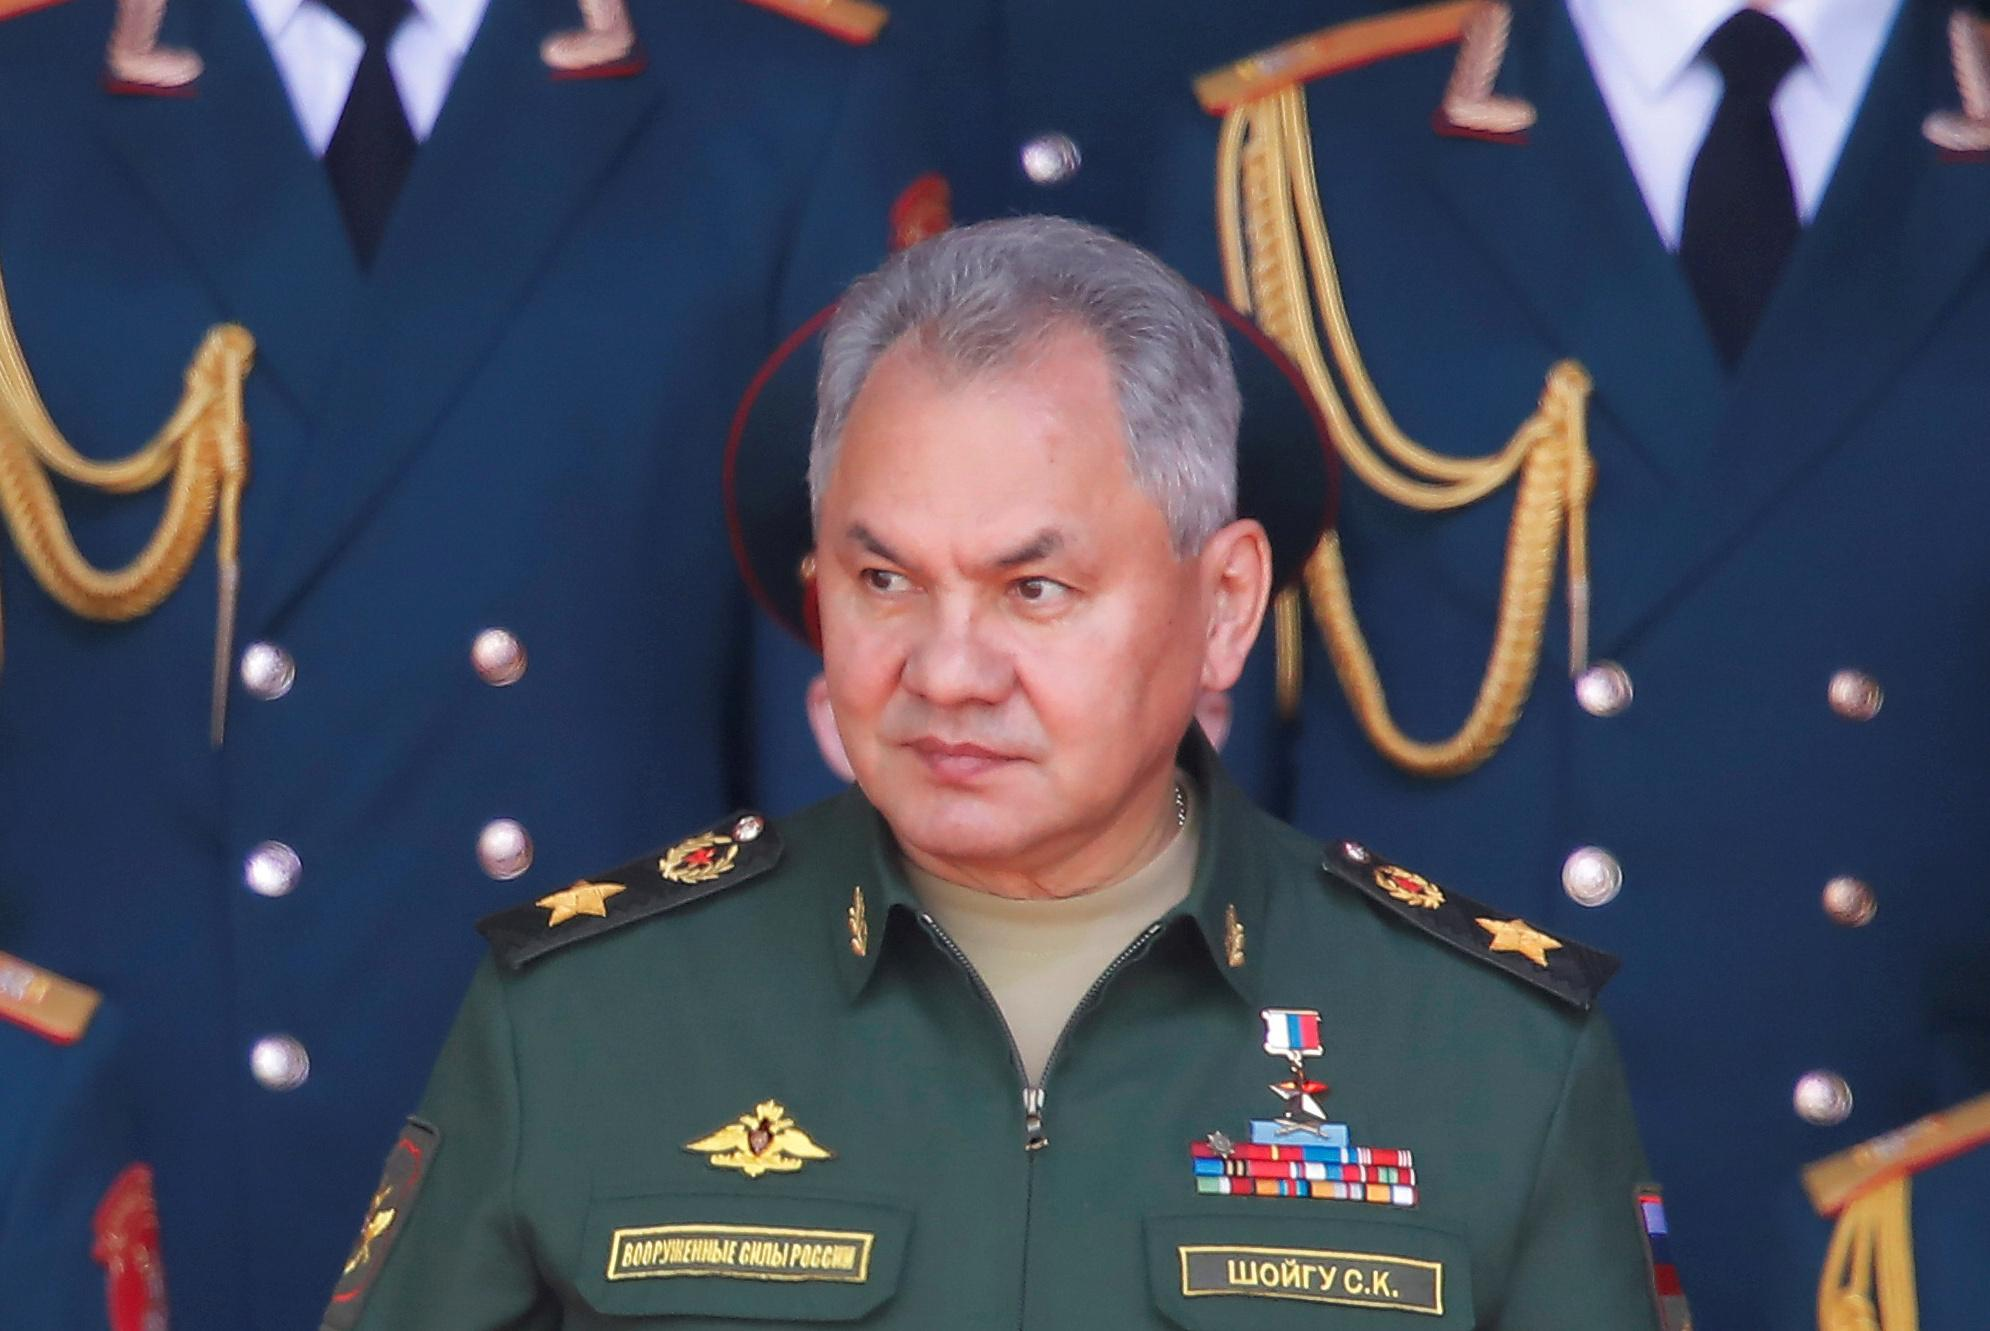 Russia says no plans to install new missiles unless U.S. deploys them